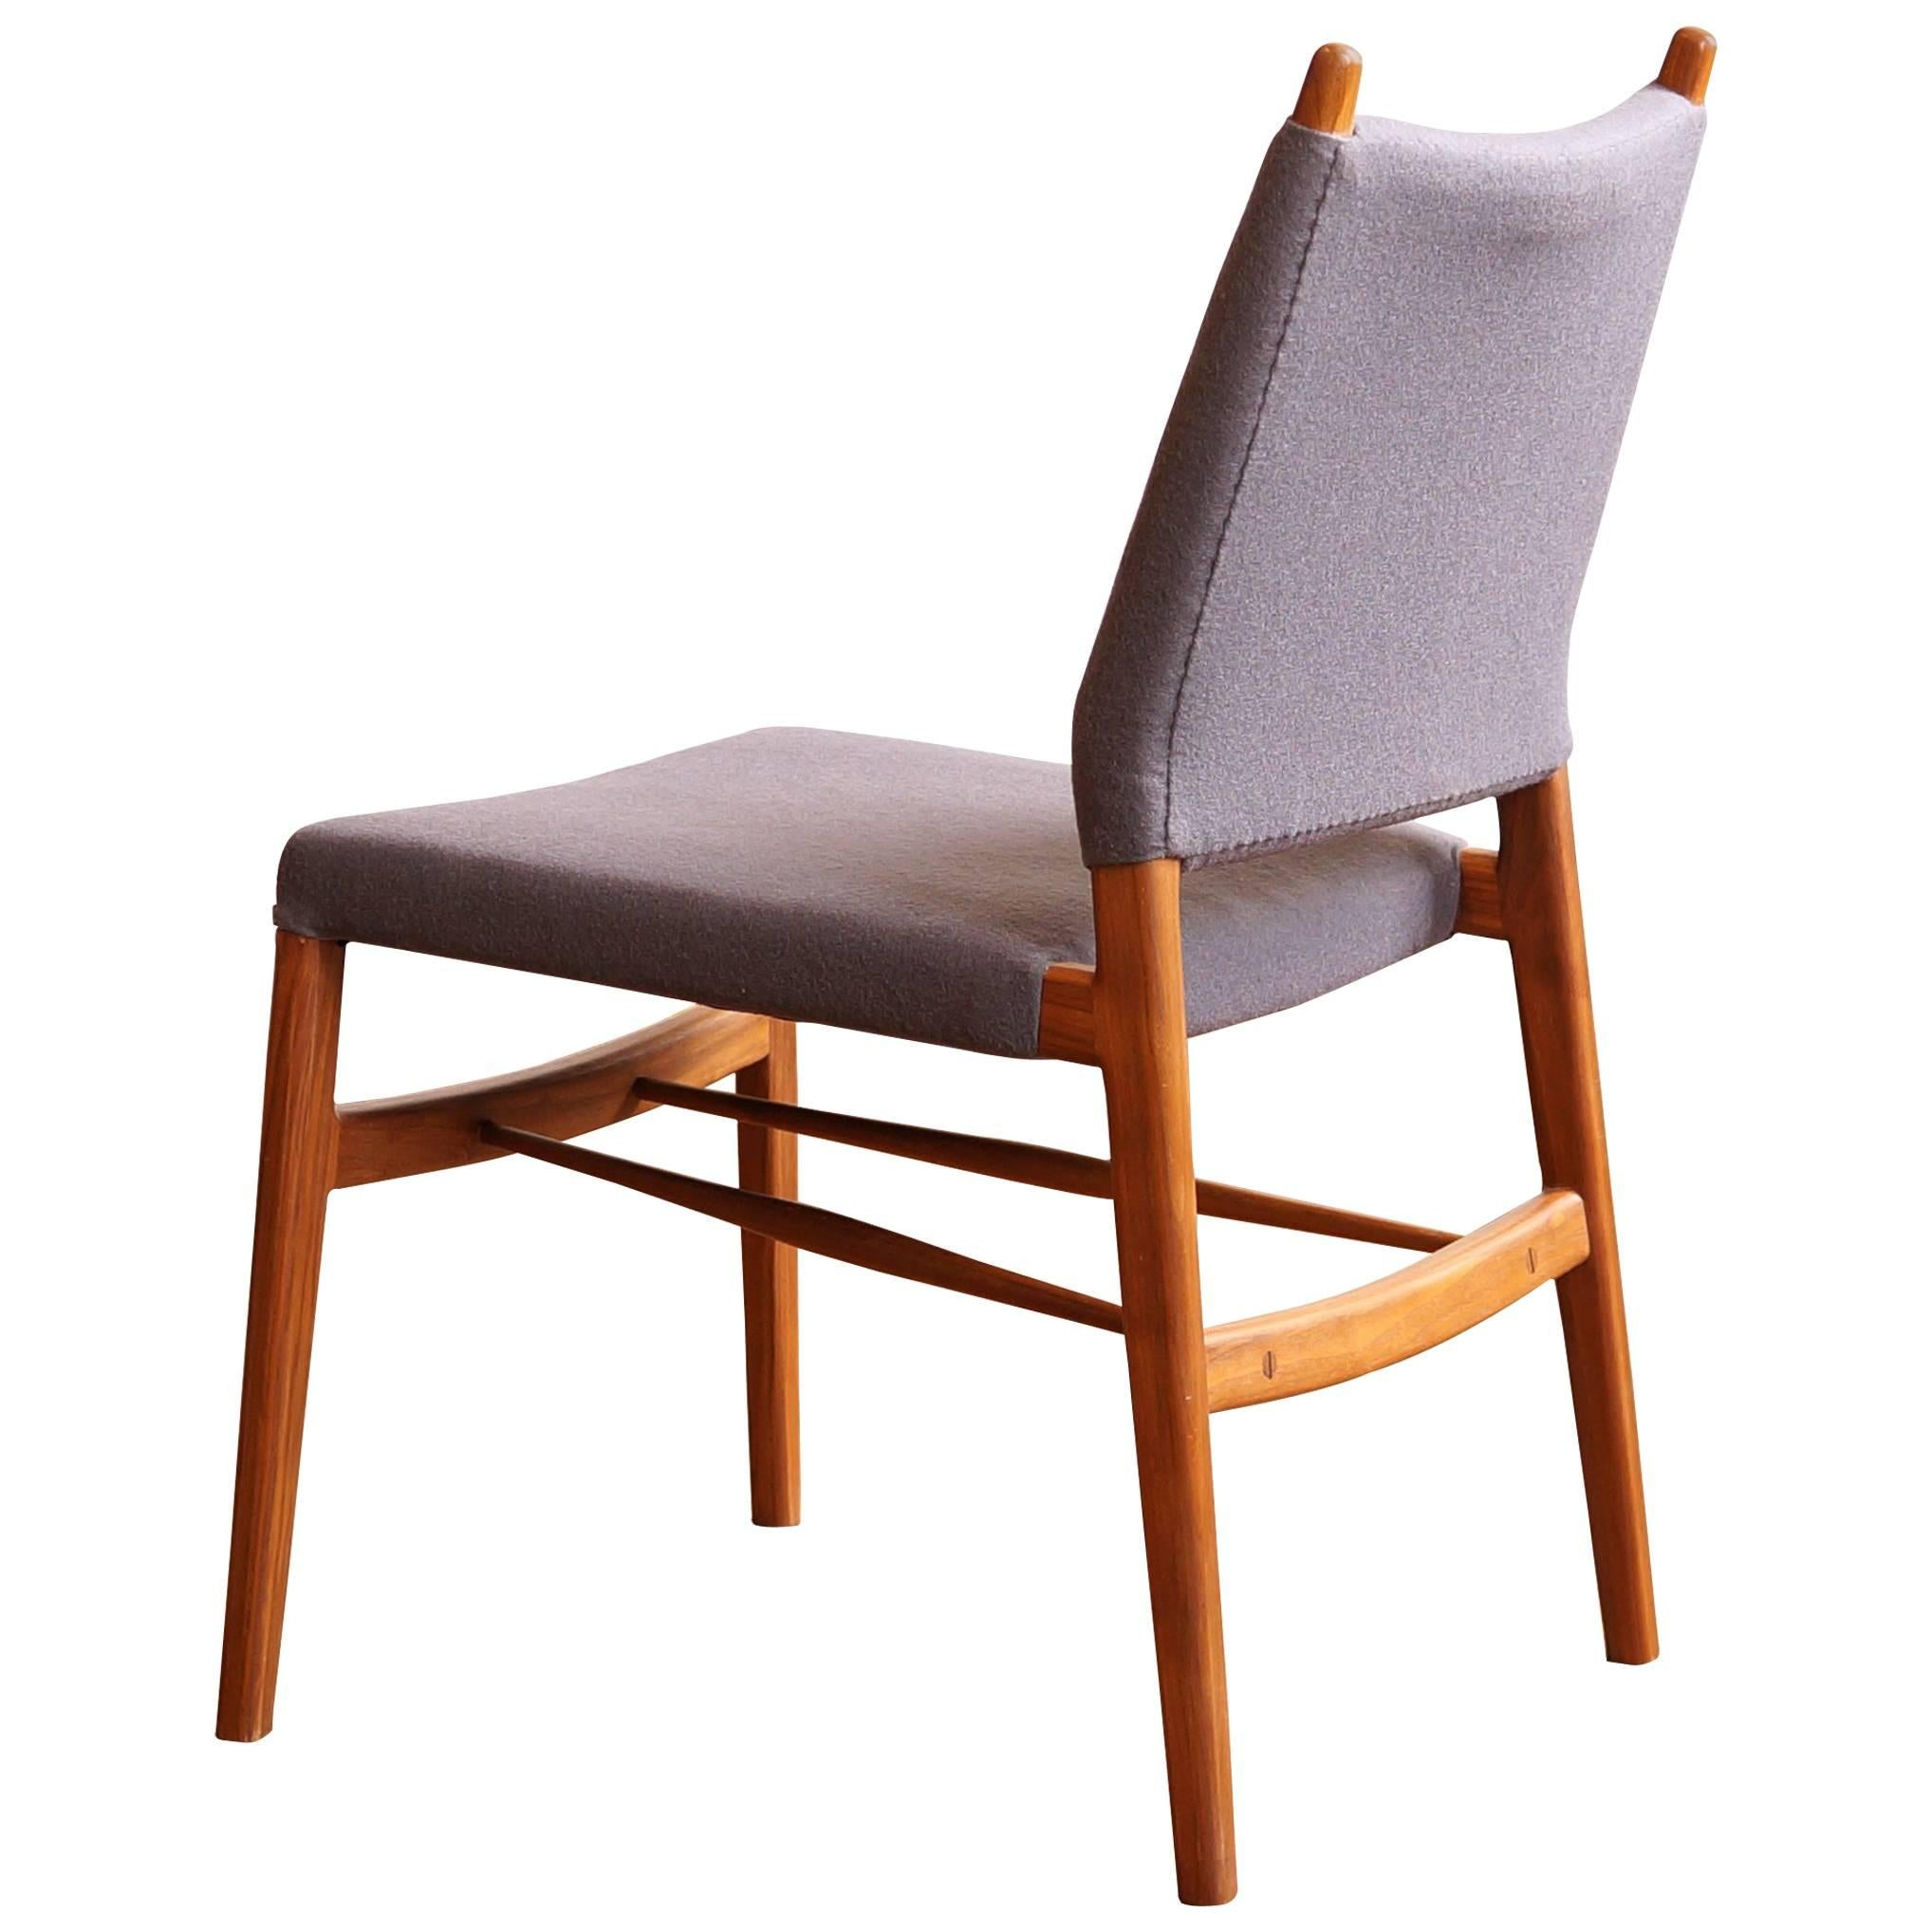 Walnut Dining Chair C03 Solid Walnut Dining Chair With Leather Seat By Jason Lewis Furniture